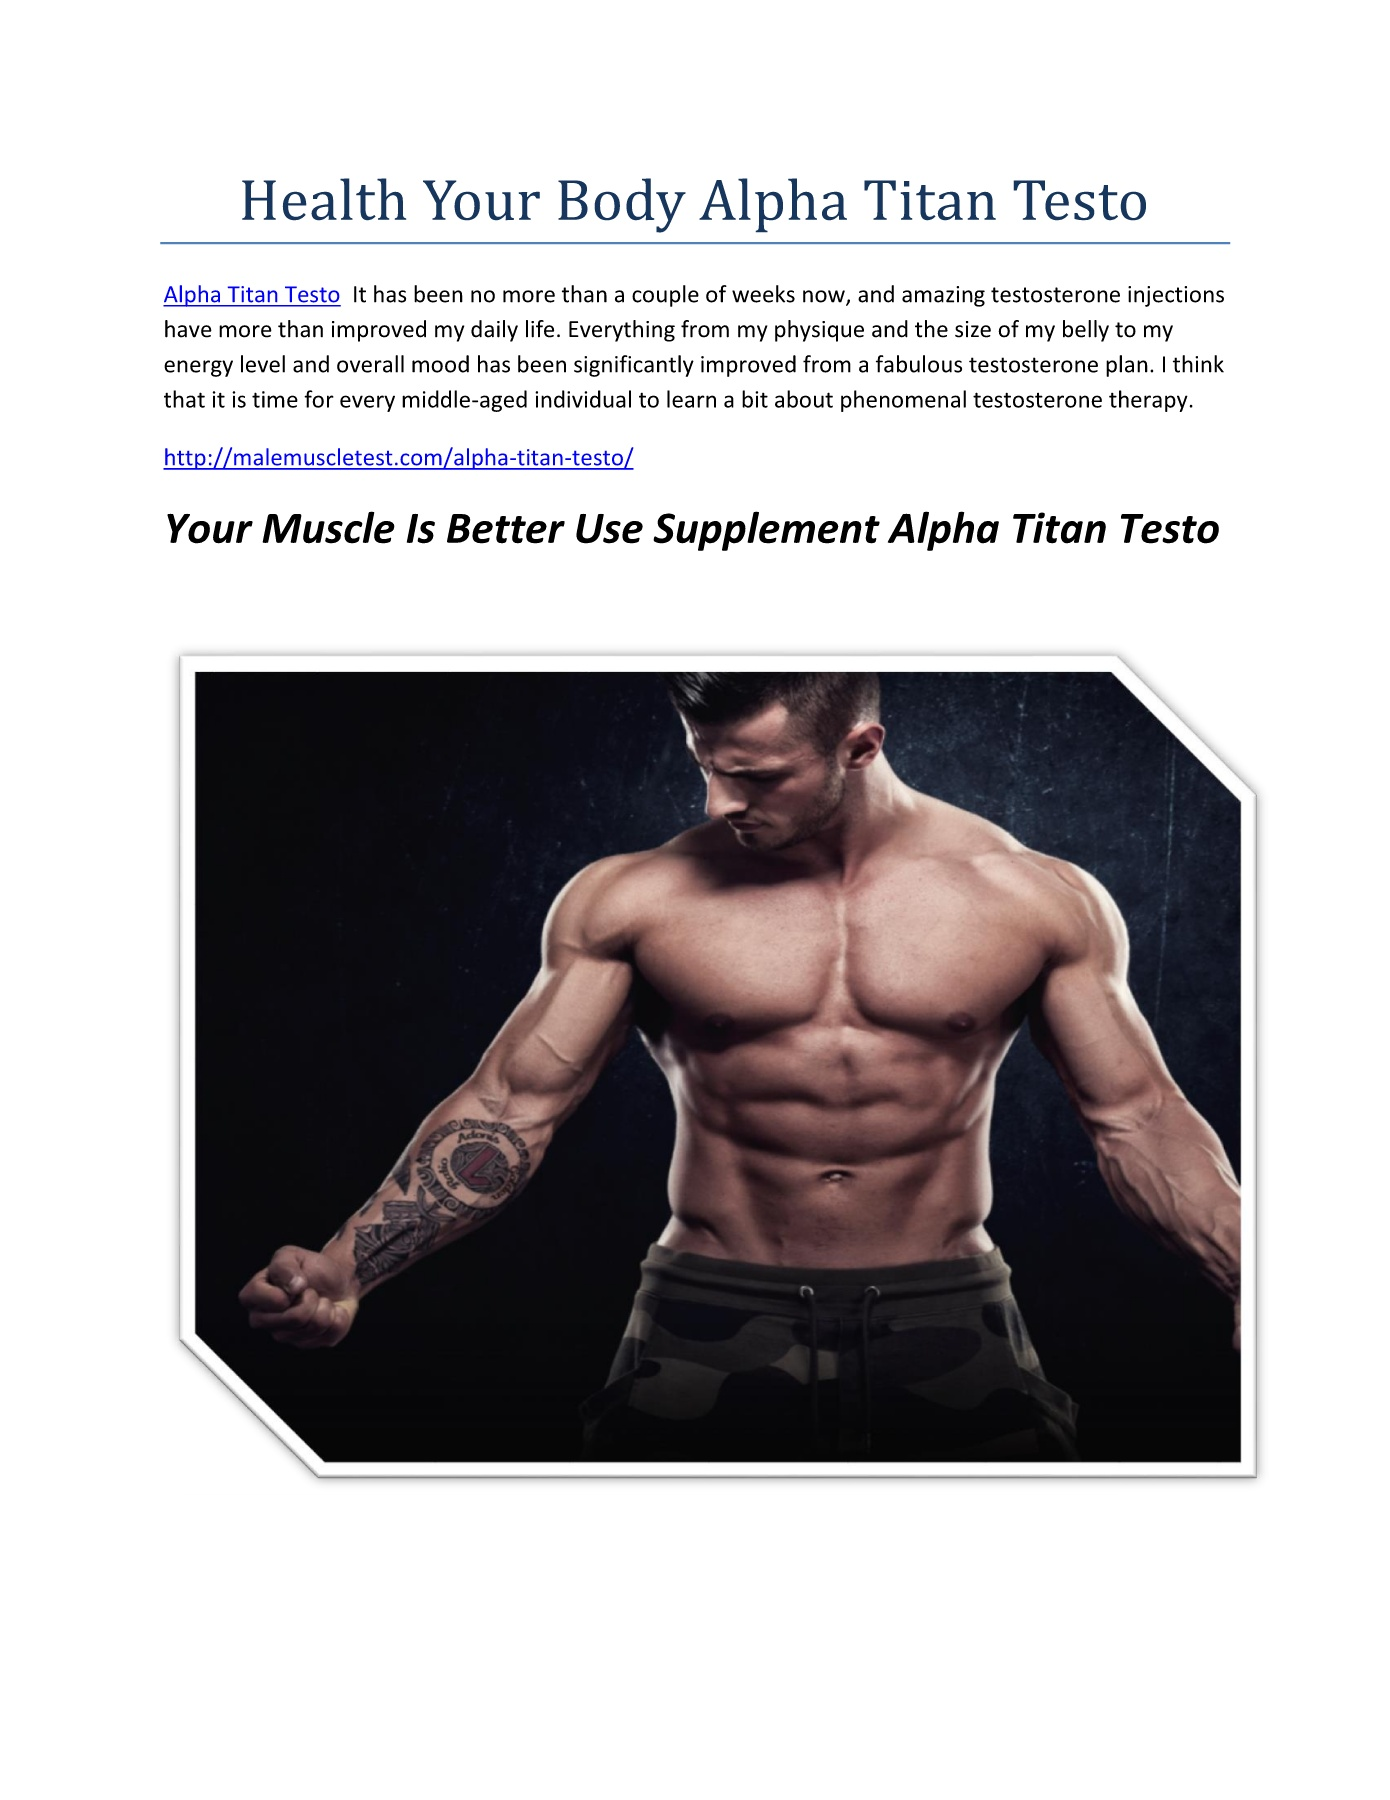 Health Your Body Alpha Titan Testo Pages 1 - 1 - Text